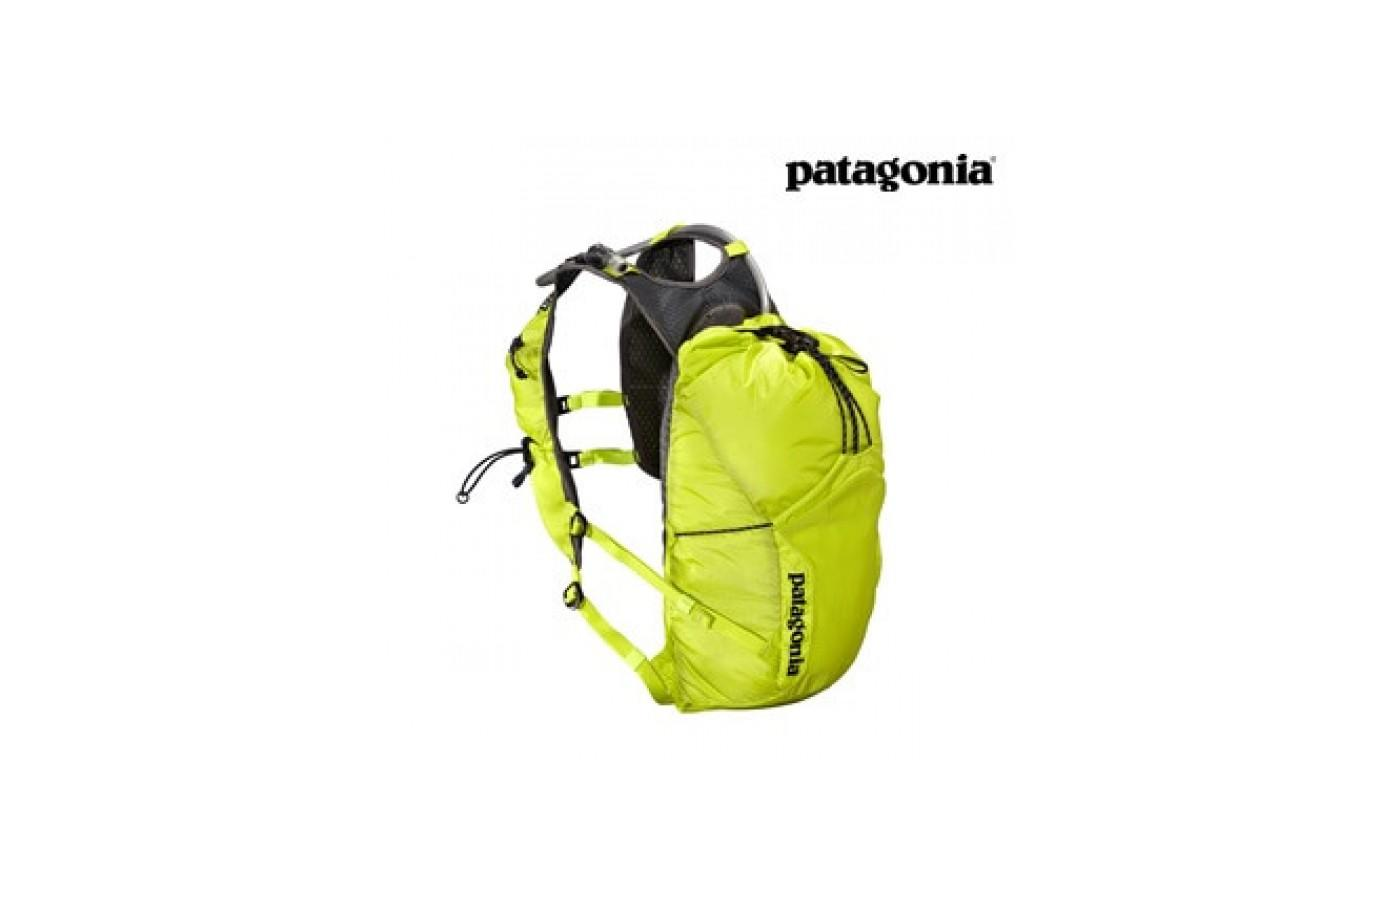 The Patagonia Fore Runner Vest 10L has a detachable drinking tube